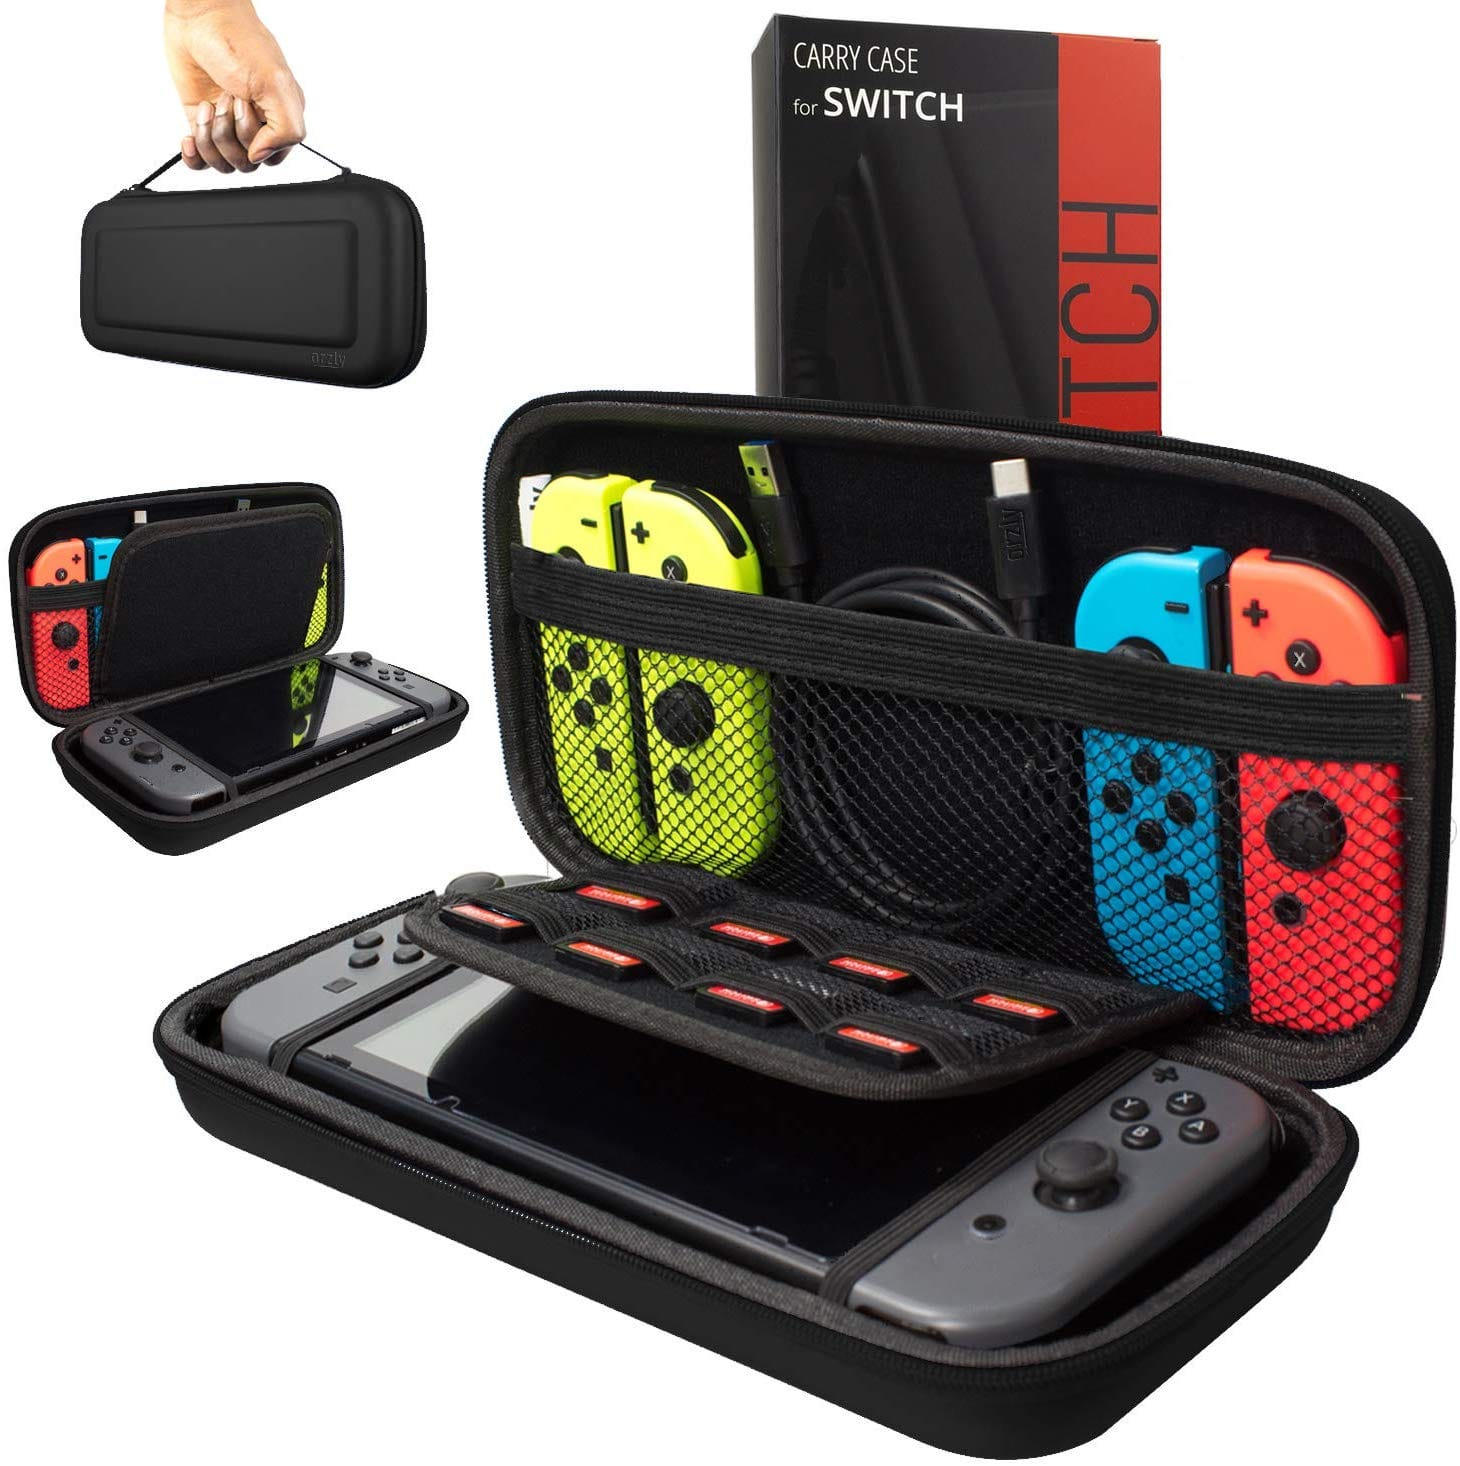 Orzly Carring Nintendo Switch Carrying Case - BLACK Protective Hard Portable Travel Carry Case Shell Pouch for Nintendo Switch Console & Accessories $15.91